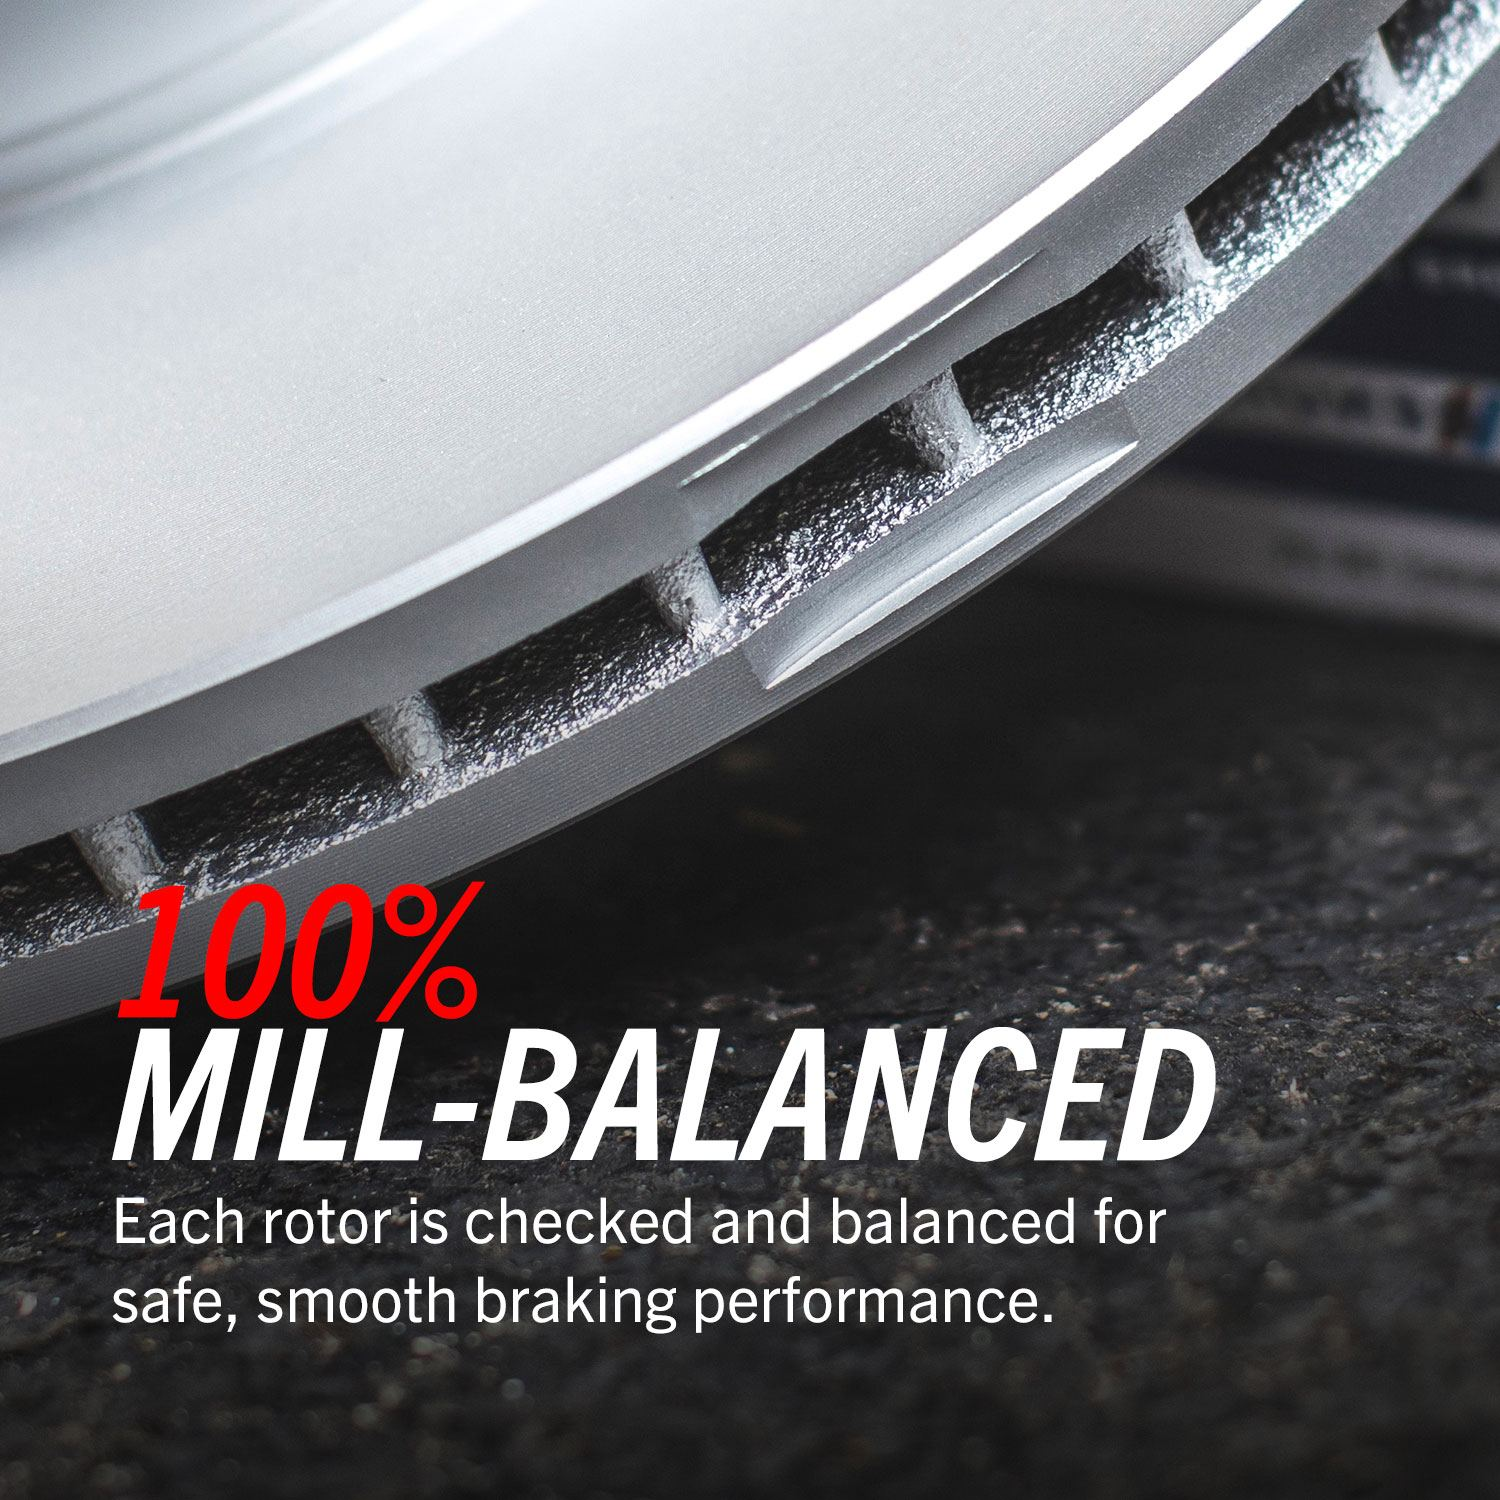 PowerStop Evolution Coated Rotor are 100% Mill-Balanced